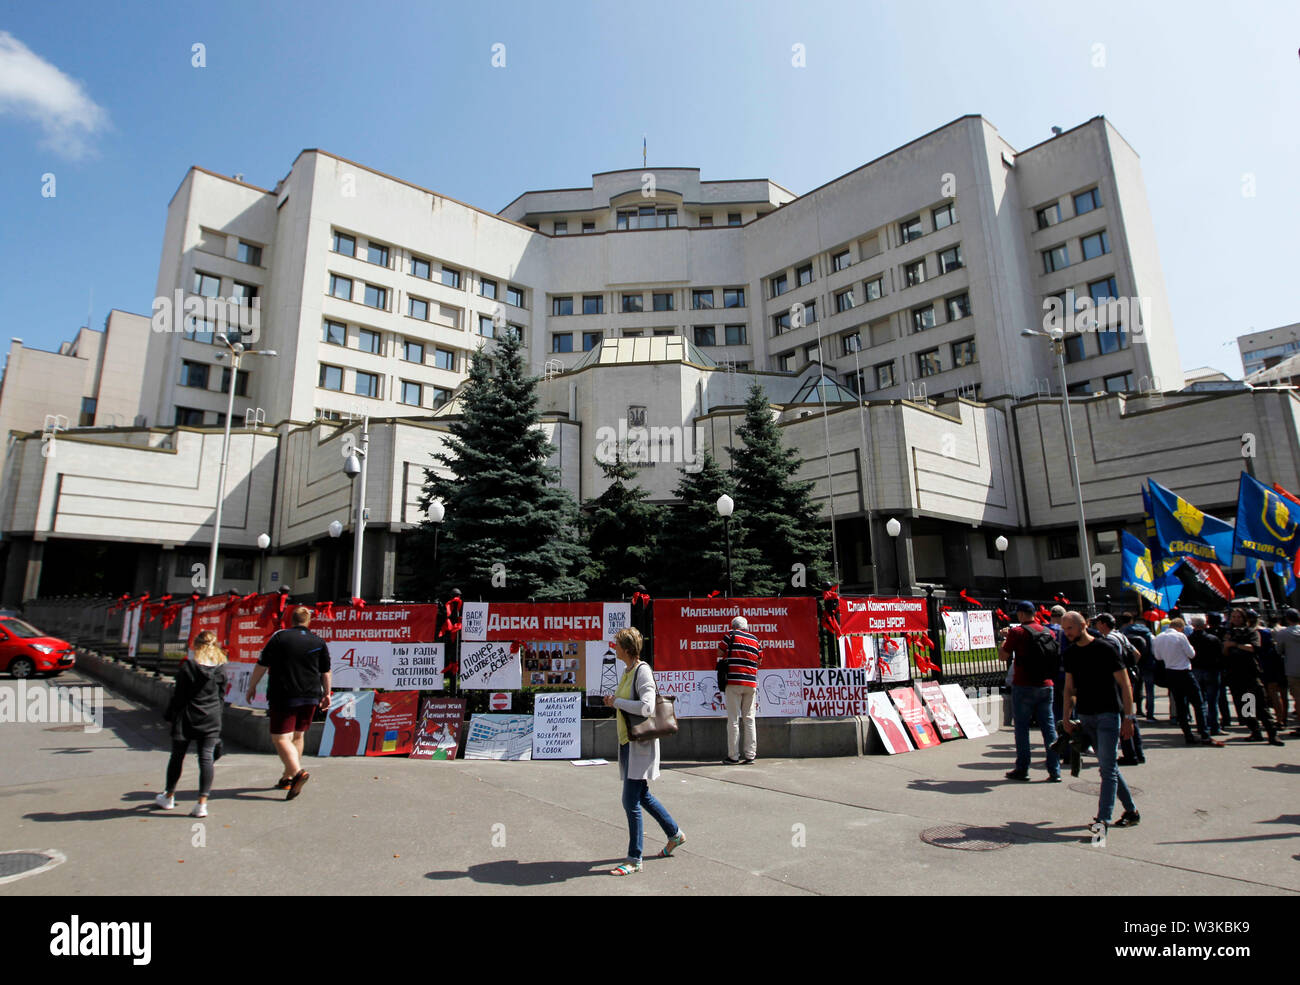 A view of placards depicting parody of Soviet era propaganda near the Ukrainian Constitutional Court building during a protest in Kiev.The activists protest against the cancellation of the laws on de-communization adopted by the Ukrainian Parliament on April 2015. 46 Ukrainian lawmakers, mostly supporters of former Russia-backed President Viktor Yanukovych, addressed the court to repeal the laws 'on the cleansing of power' and 'on condemnation of the communist and national socialist (Nazi) totalitarian regimes in Ukraine and the prohibition of their symbols. Stock Photo